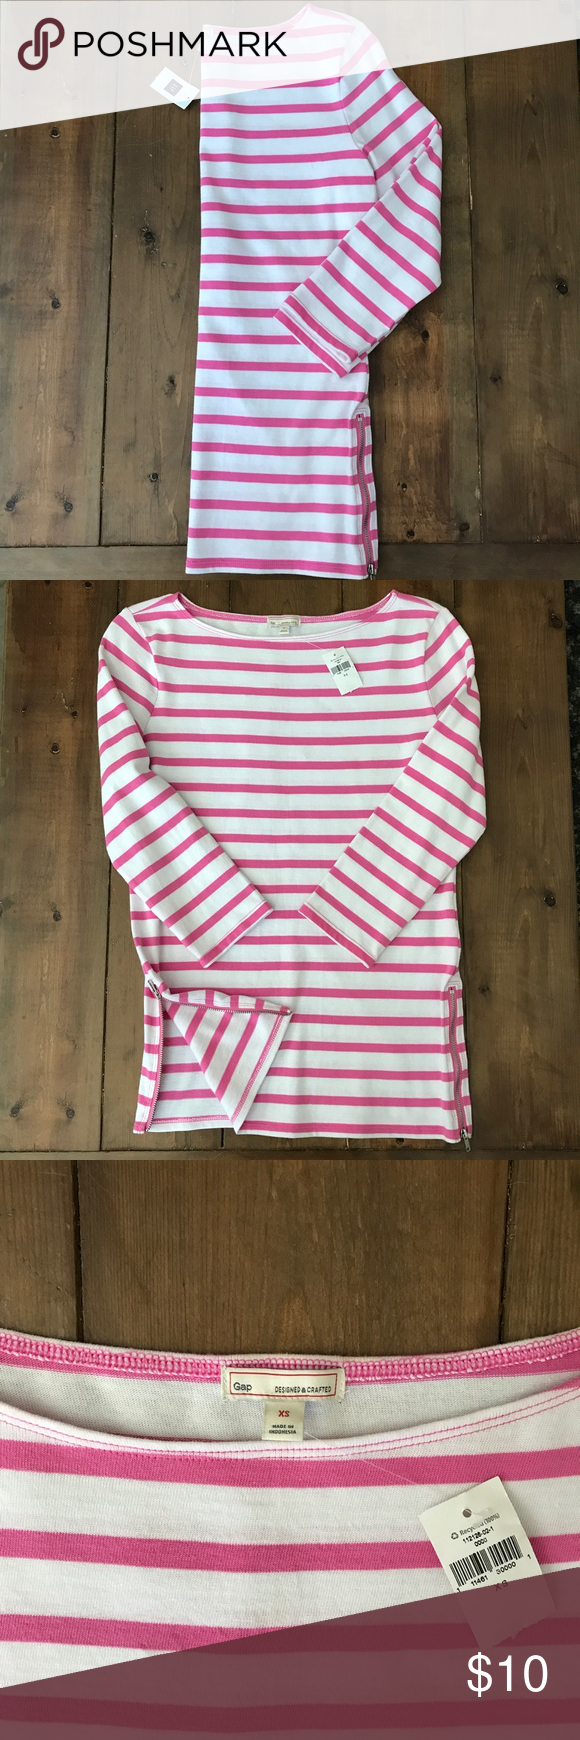 Pink And White Stripe Gap 3 4 Sleeve Top Nwt Clothes Design Pink And White Stripes Fashion Design